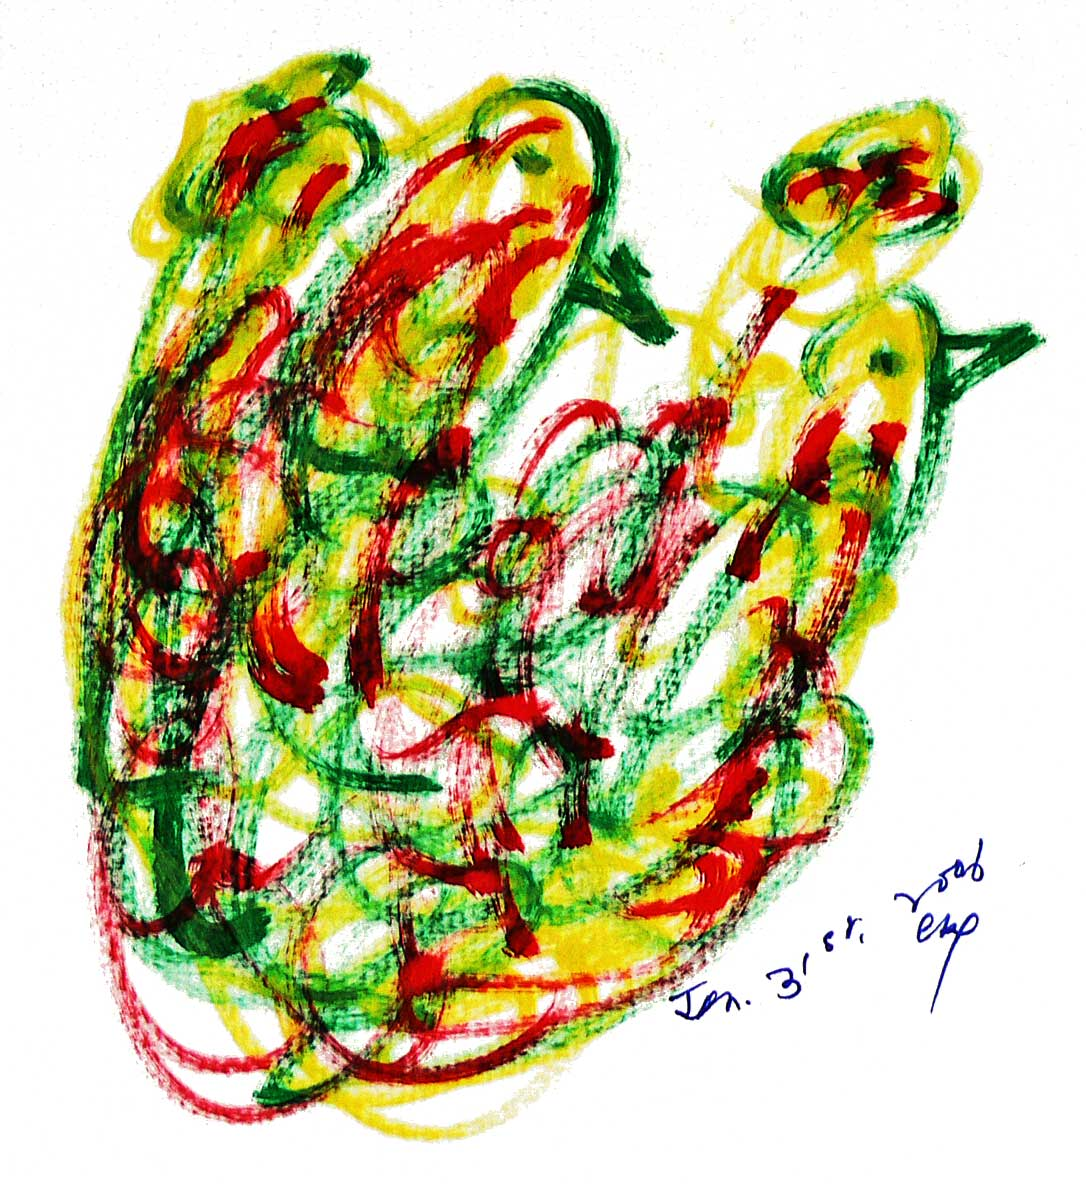 Bird-Drawing-by-Sri-Chinmoy-31-1-2006-9